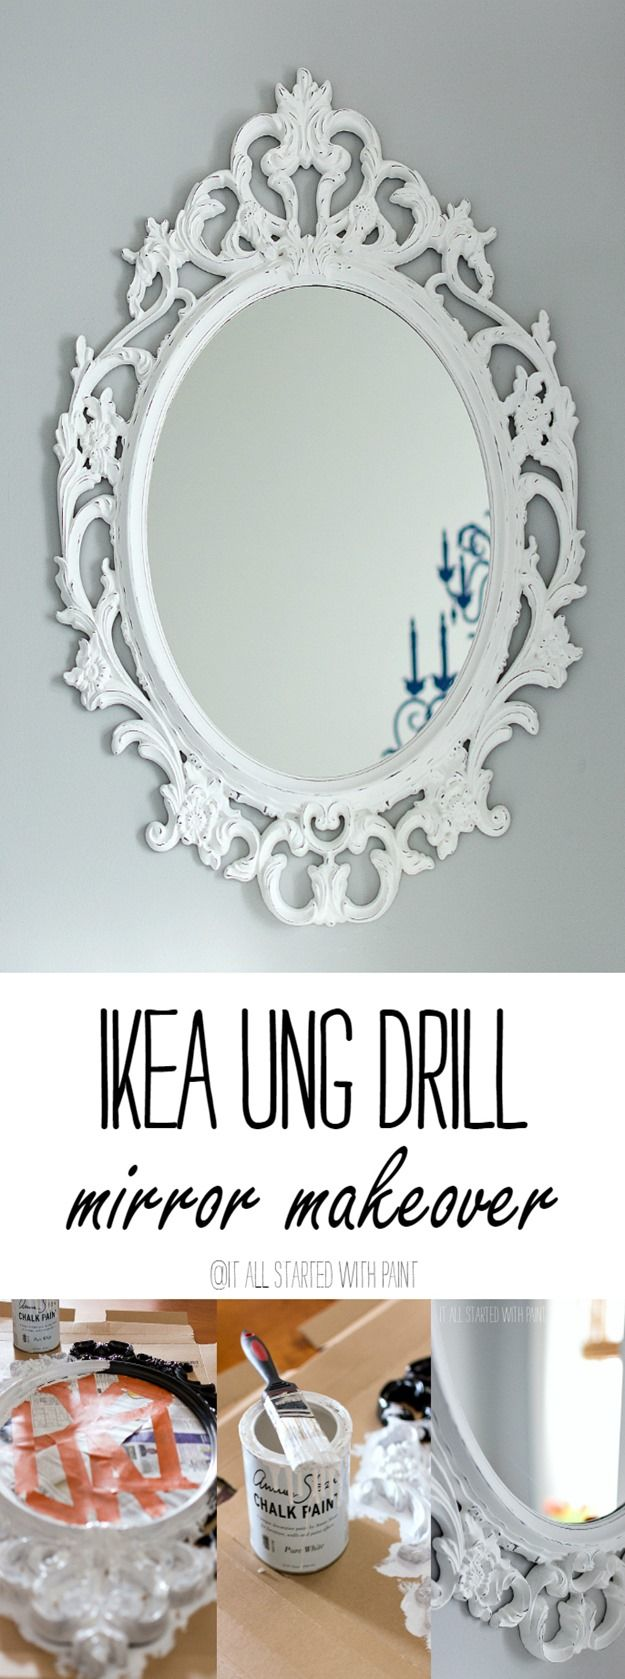 1000 ideas about ikea mirror hack on pinterest farm for Miroir ung drill